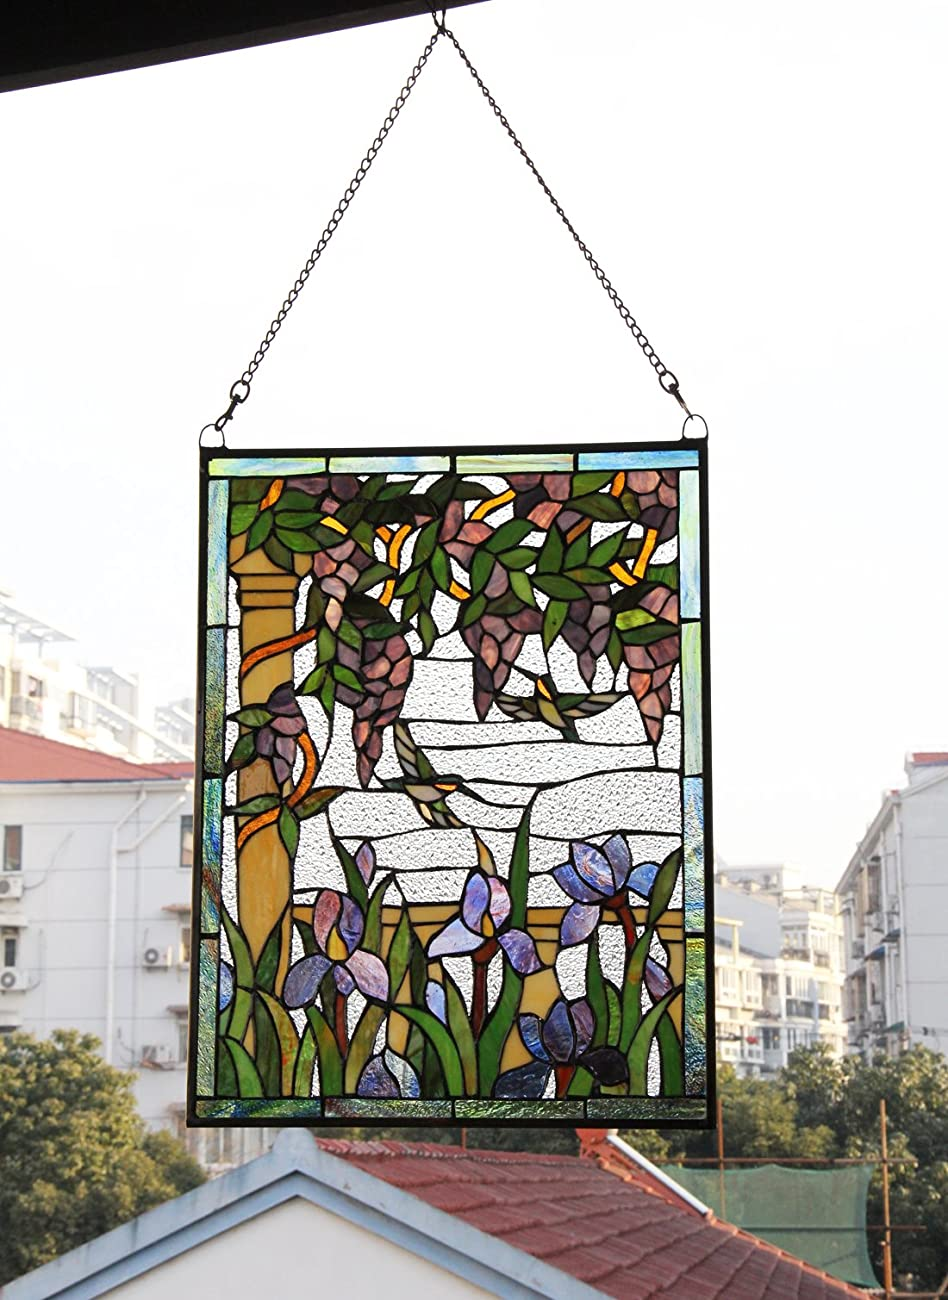 Makenier Vintage Tiffany Style Stained Art Glass Wisteria and Hummingbirds Window Panel Wall Hanging 4